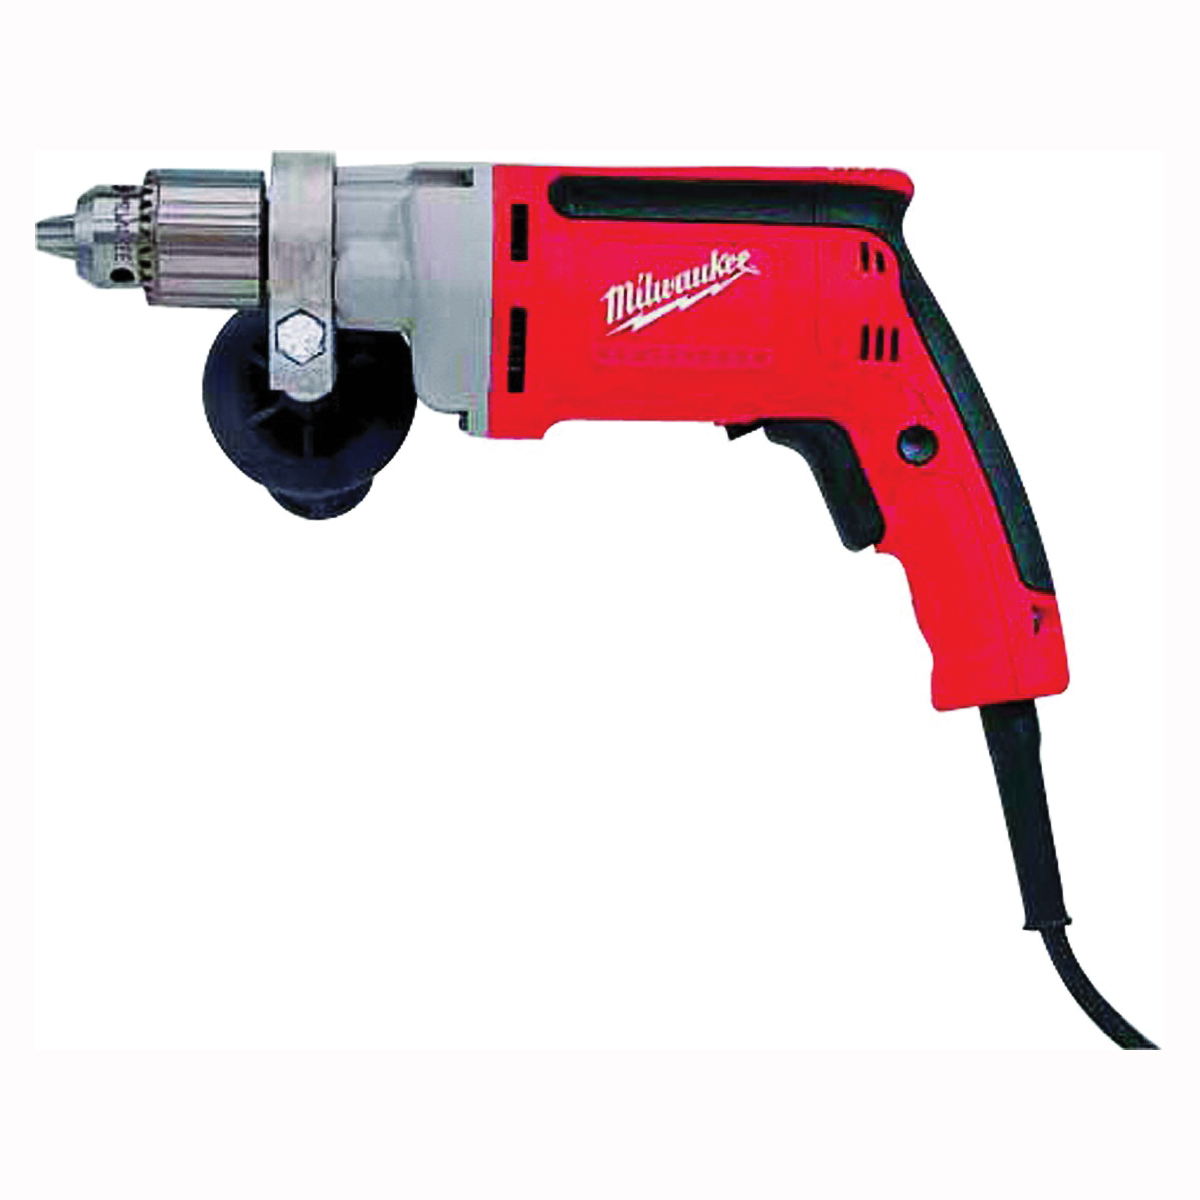 Picture of Milwaukee 0300-20 Electric Drill, 120 VAC, 1/2 in Chuck, Keyed Chuck, 0 to 850 rpm No Load